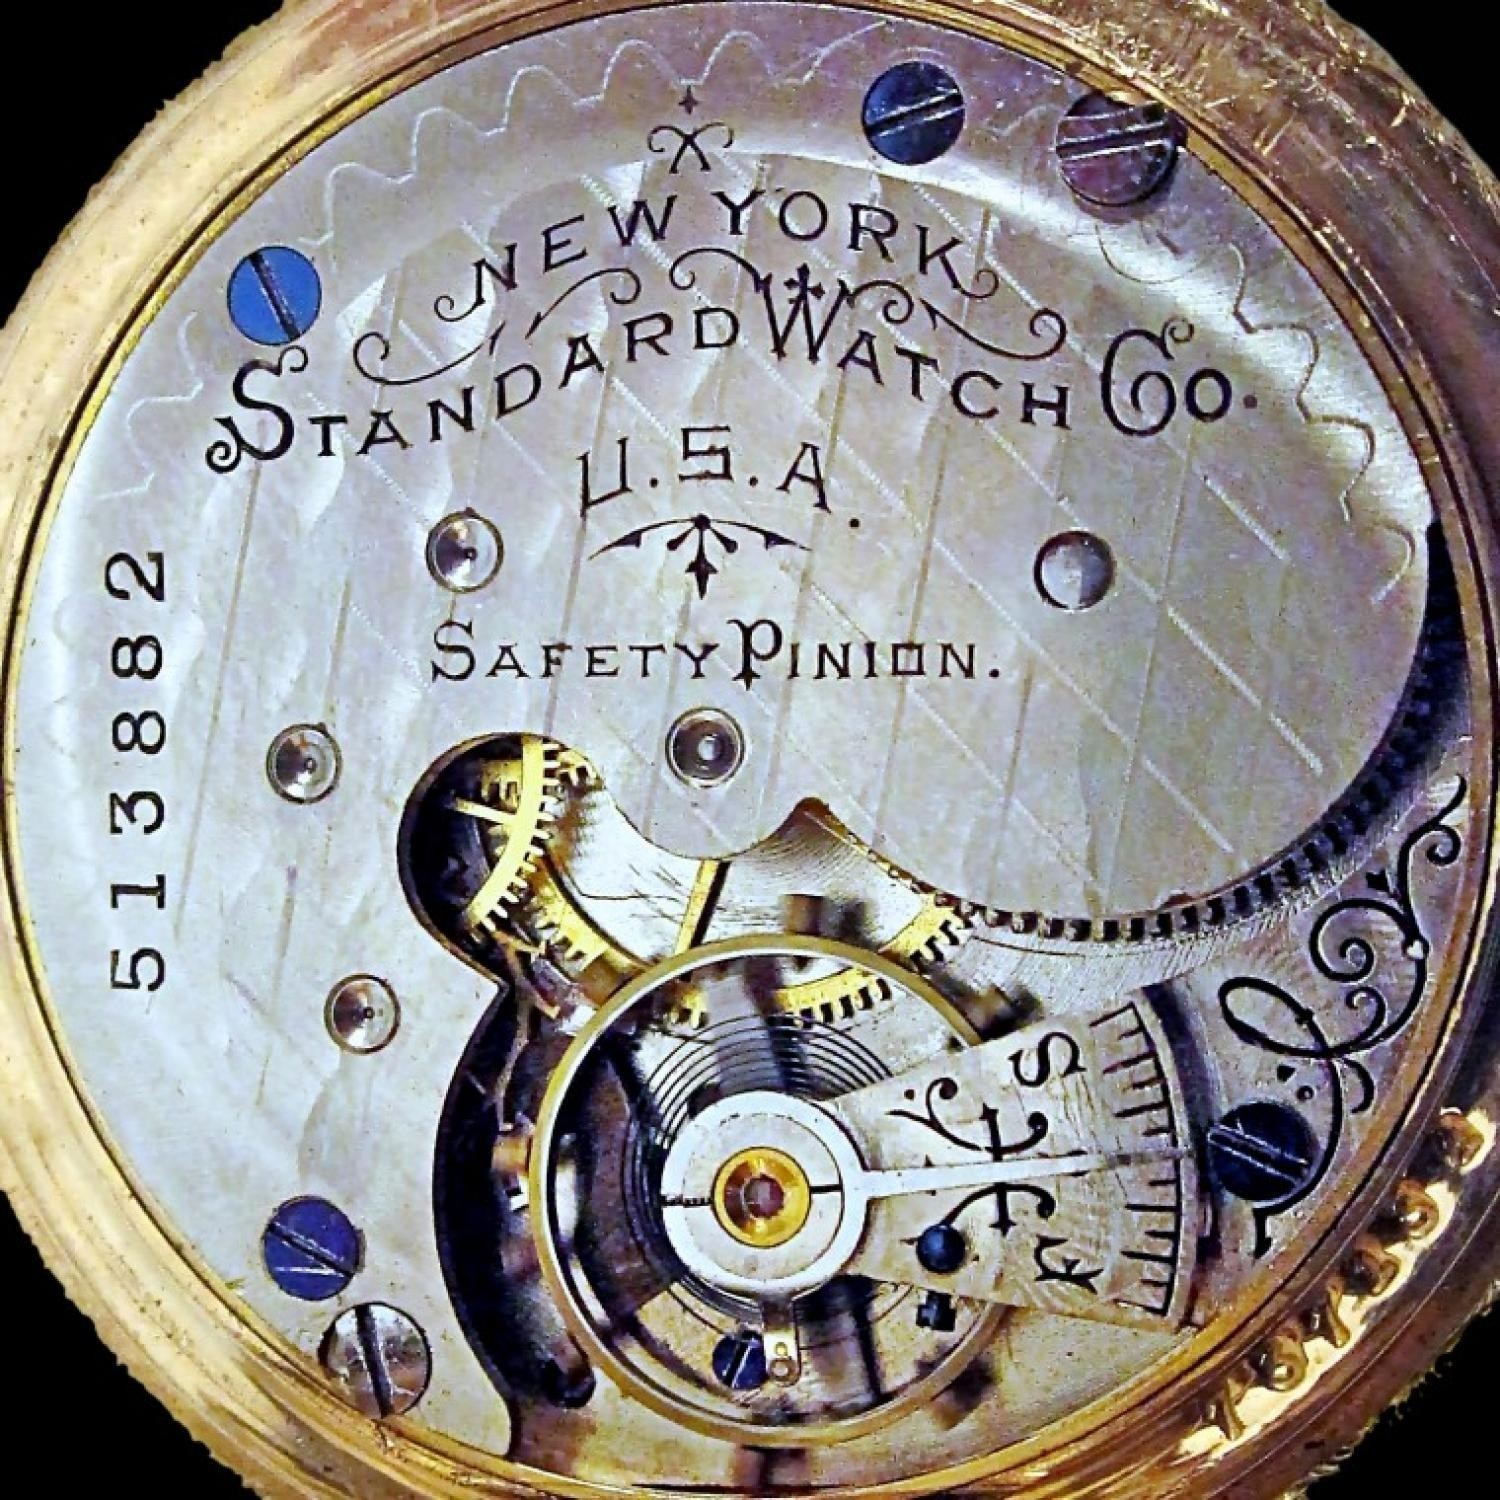 Image of New York Standard Watch Co. 44 #513882 Movement